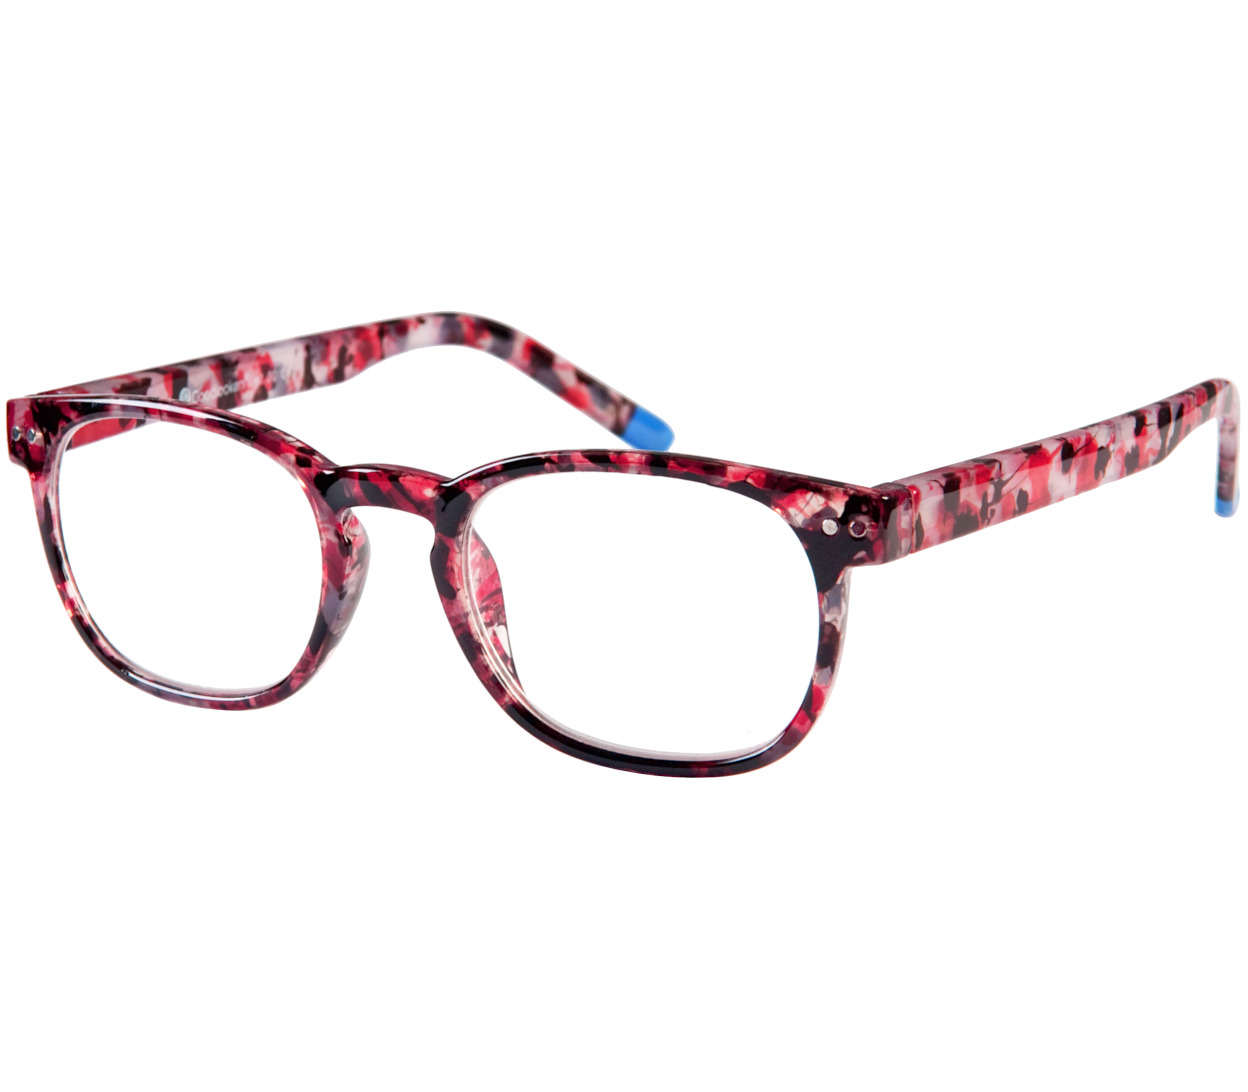 Main Image (Angle) - Edenbridge (Red) Fashion Reading Glasses